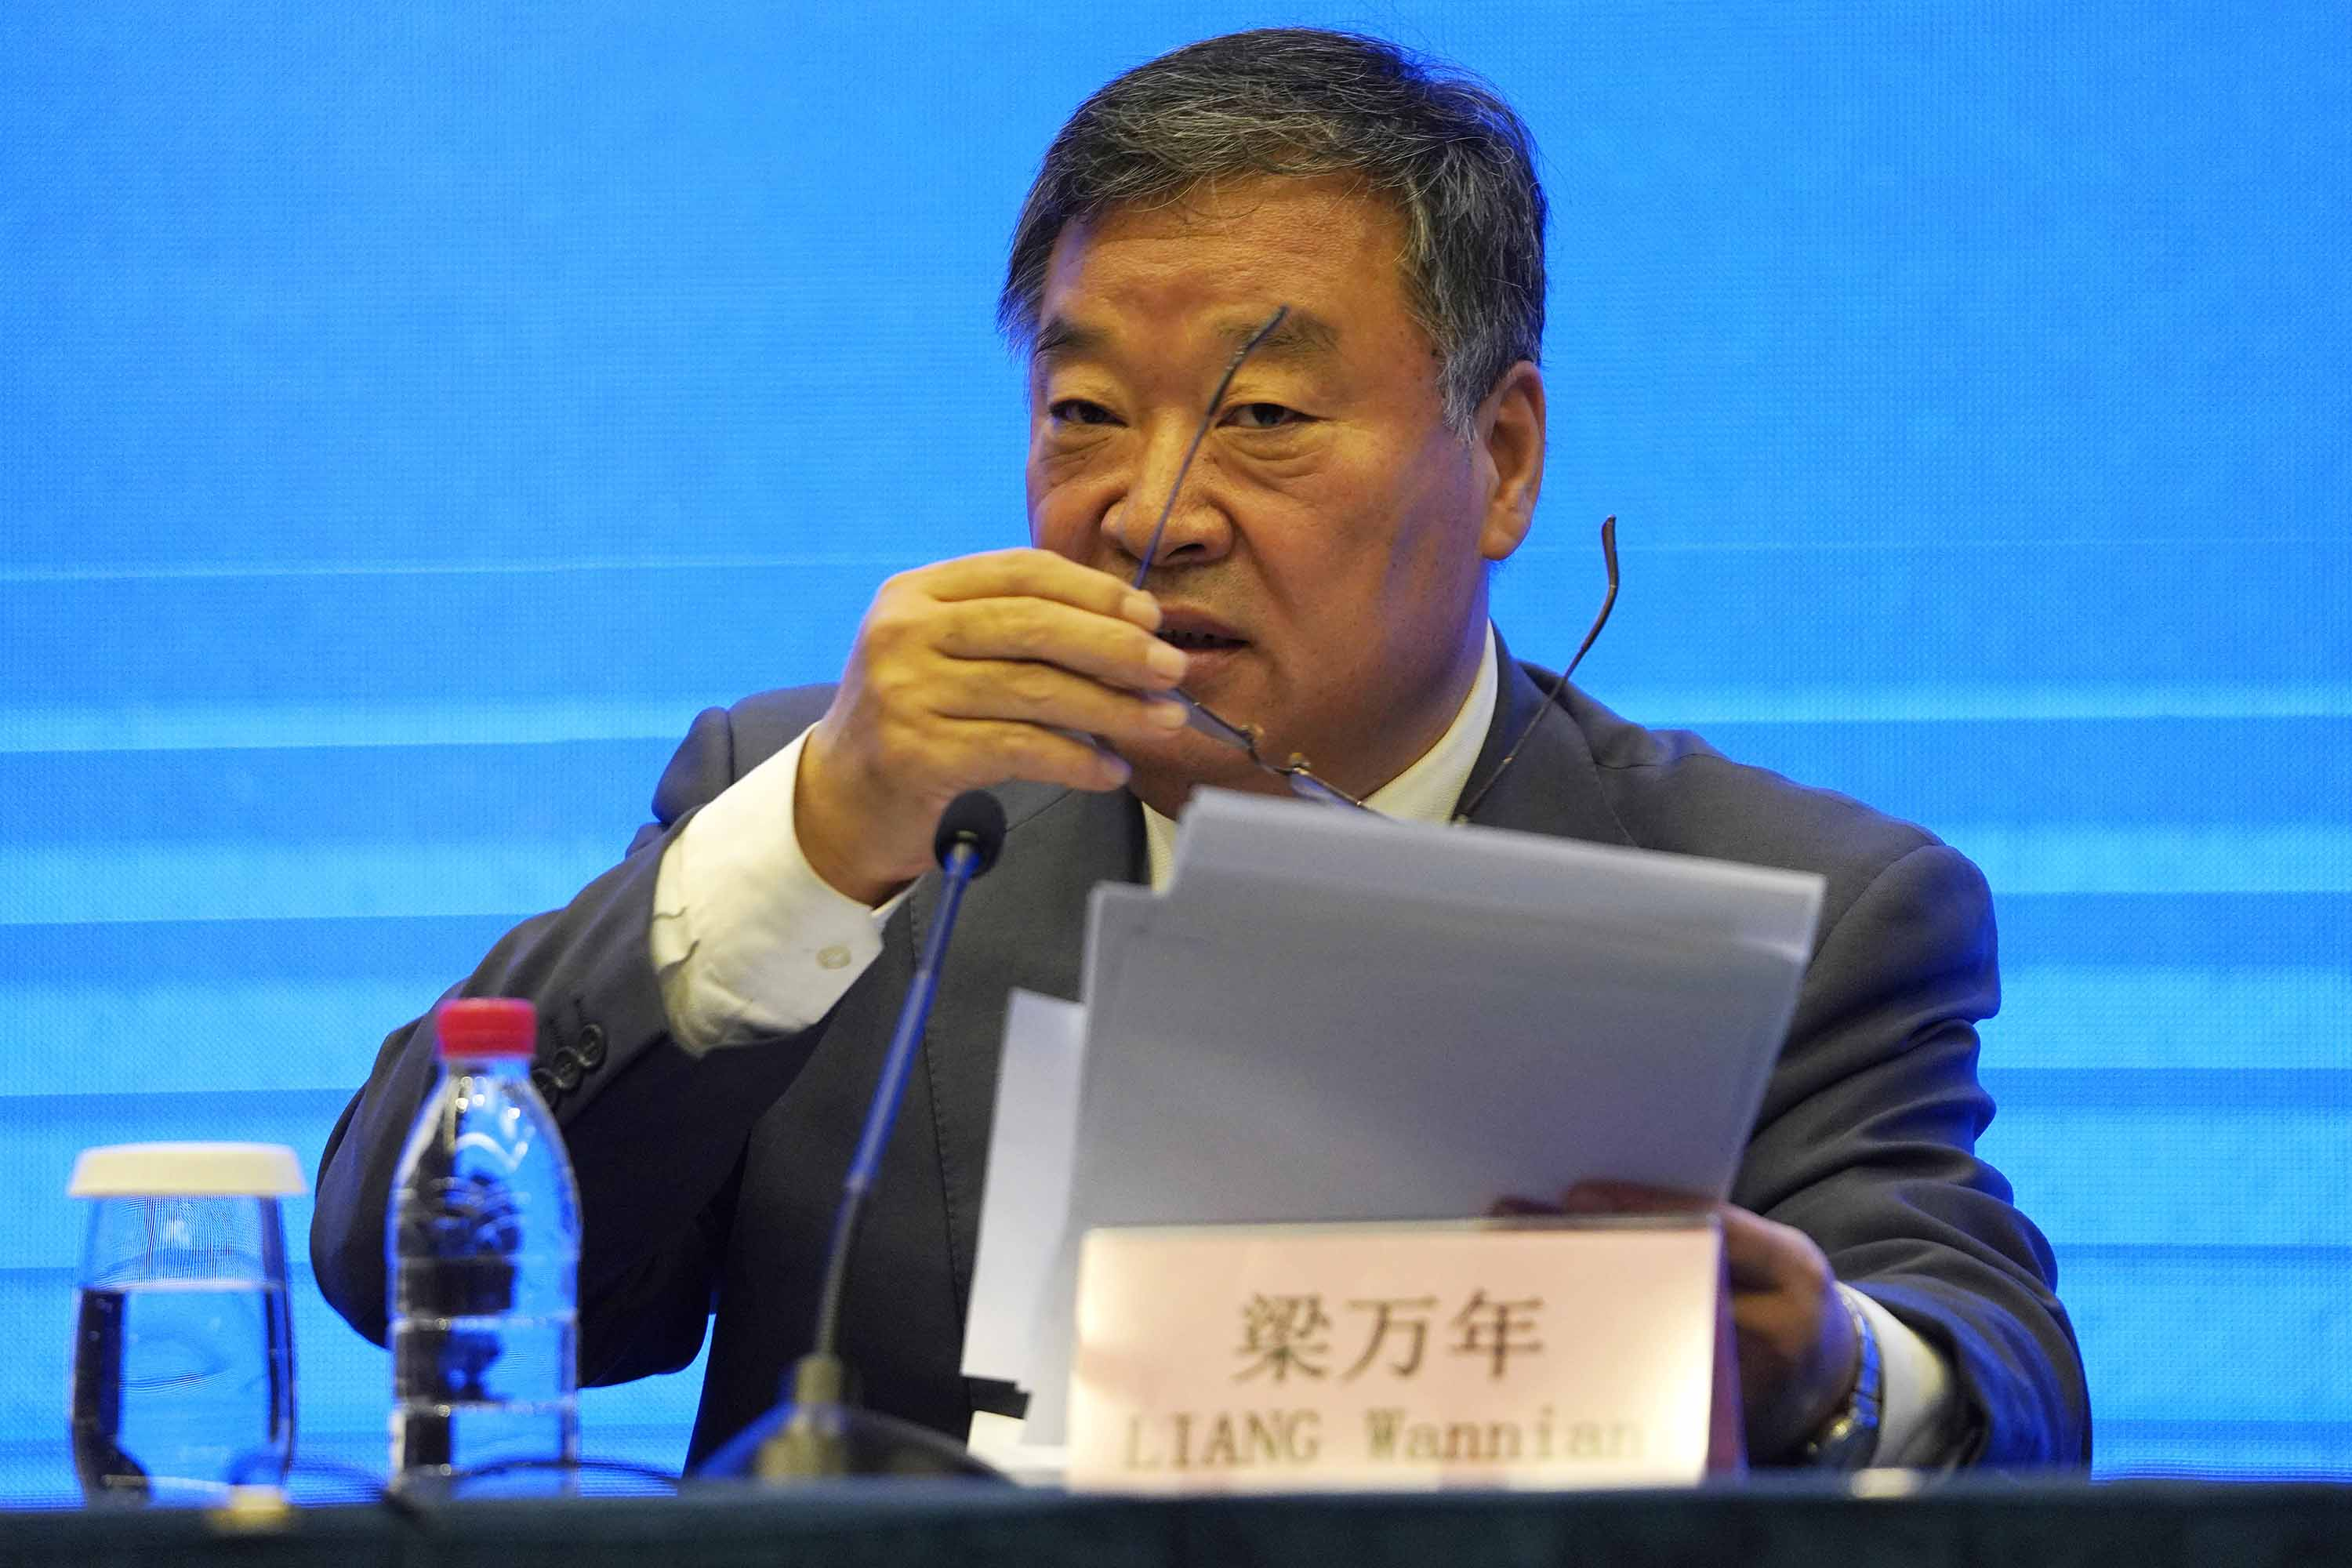 Liang Wannian speaks during a joint press conference with the World Health Organization team in Wuhan, China, on Tuesday, February 9.